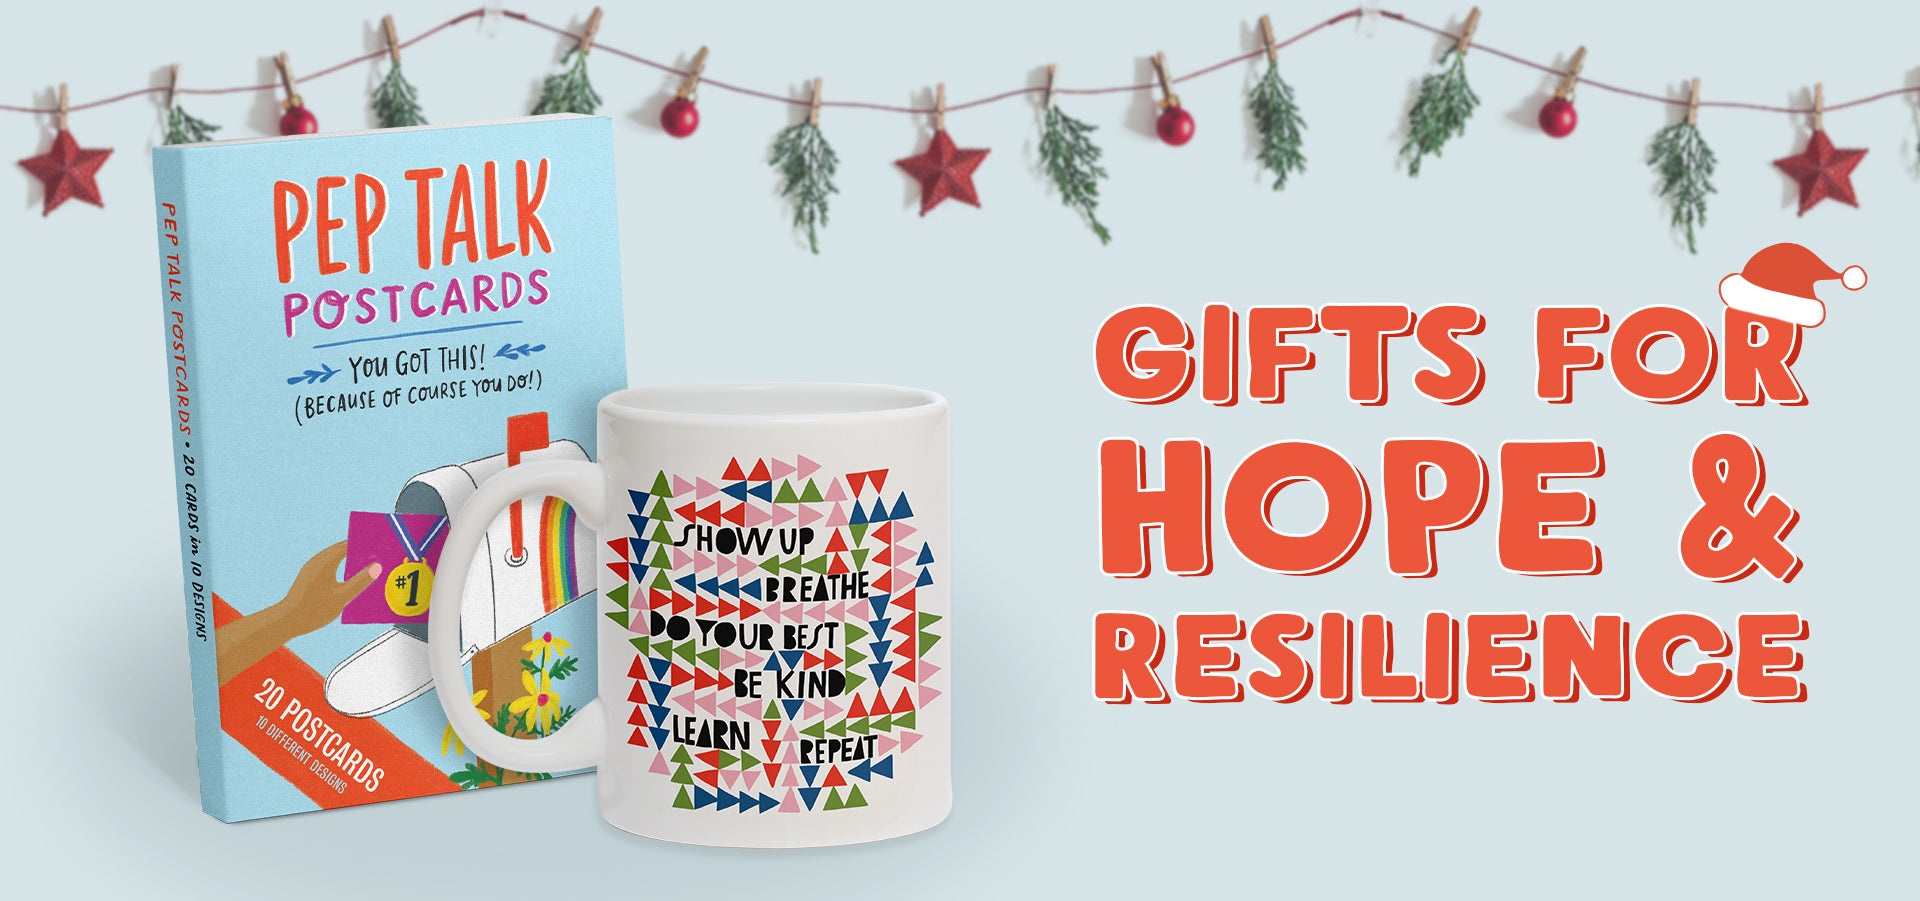 heartwarming holiday gifts that encourage hope &amp resilience